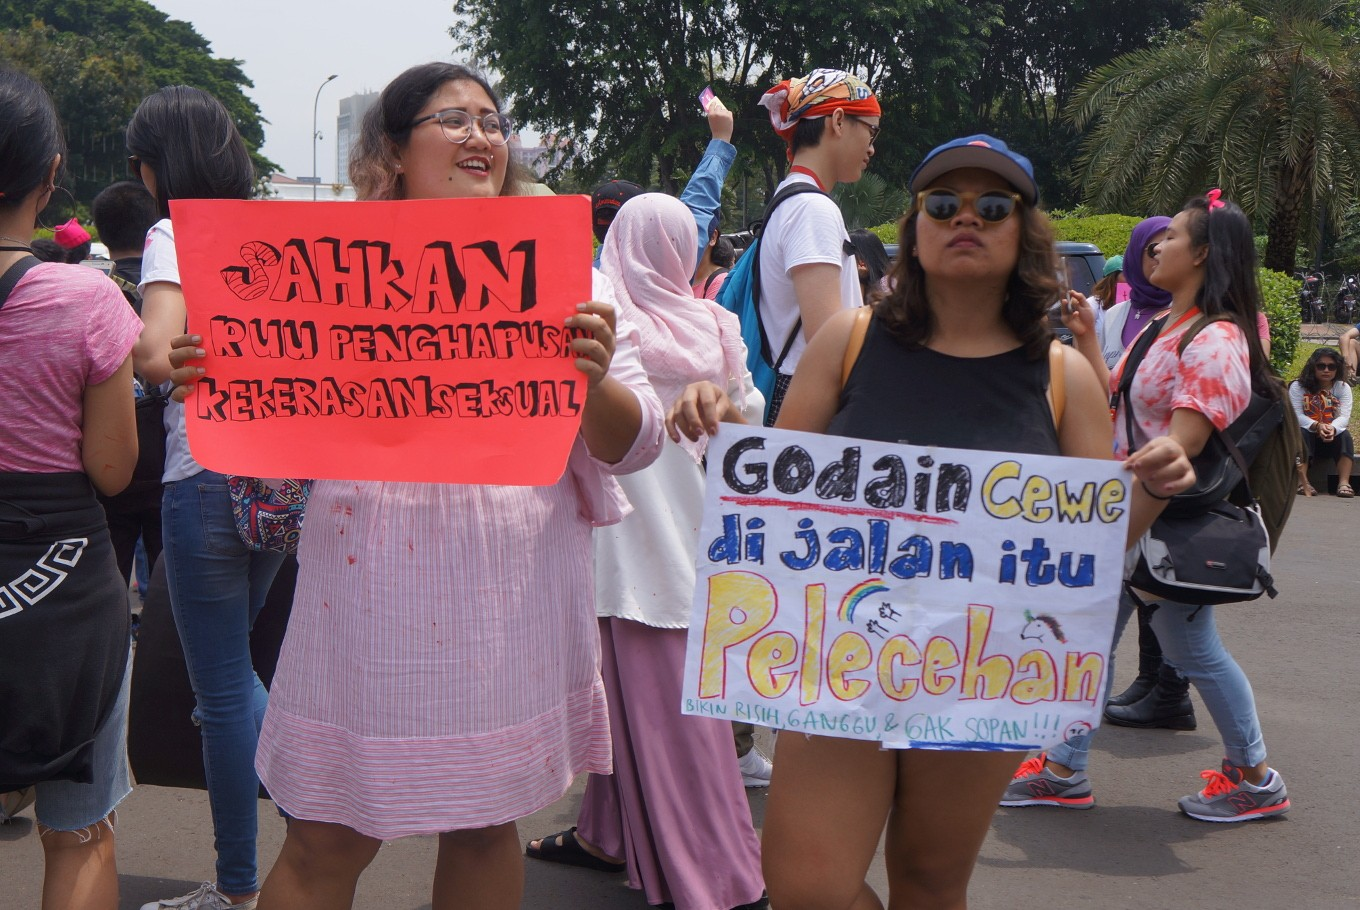 Two women hold posters encouraging the government to legalize a law to eliminate sexual violence (left) and informing people that catcalling is a form of sexual harassment.